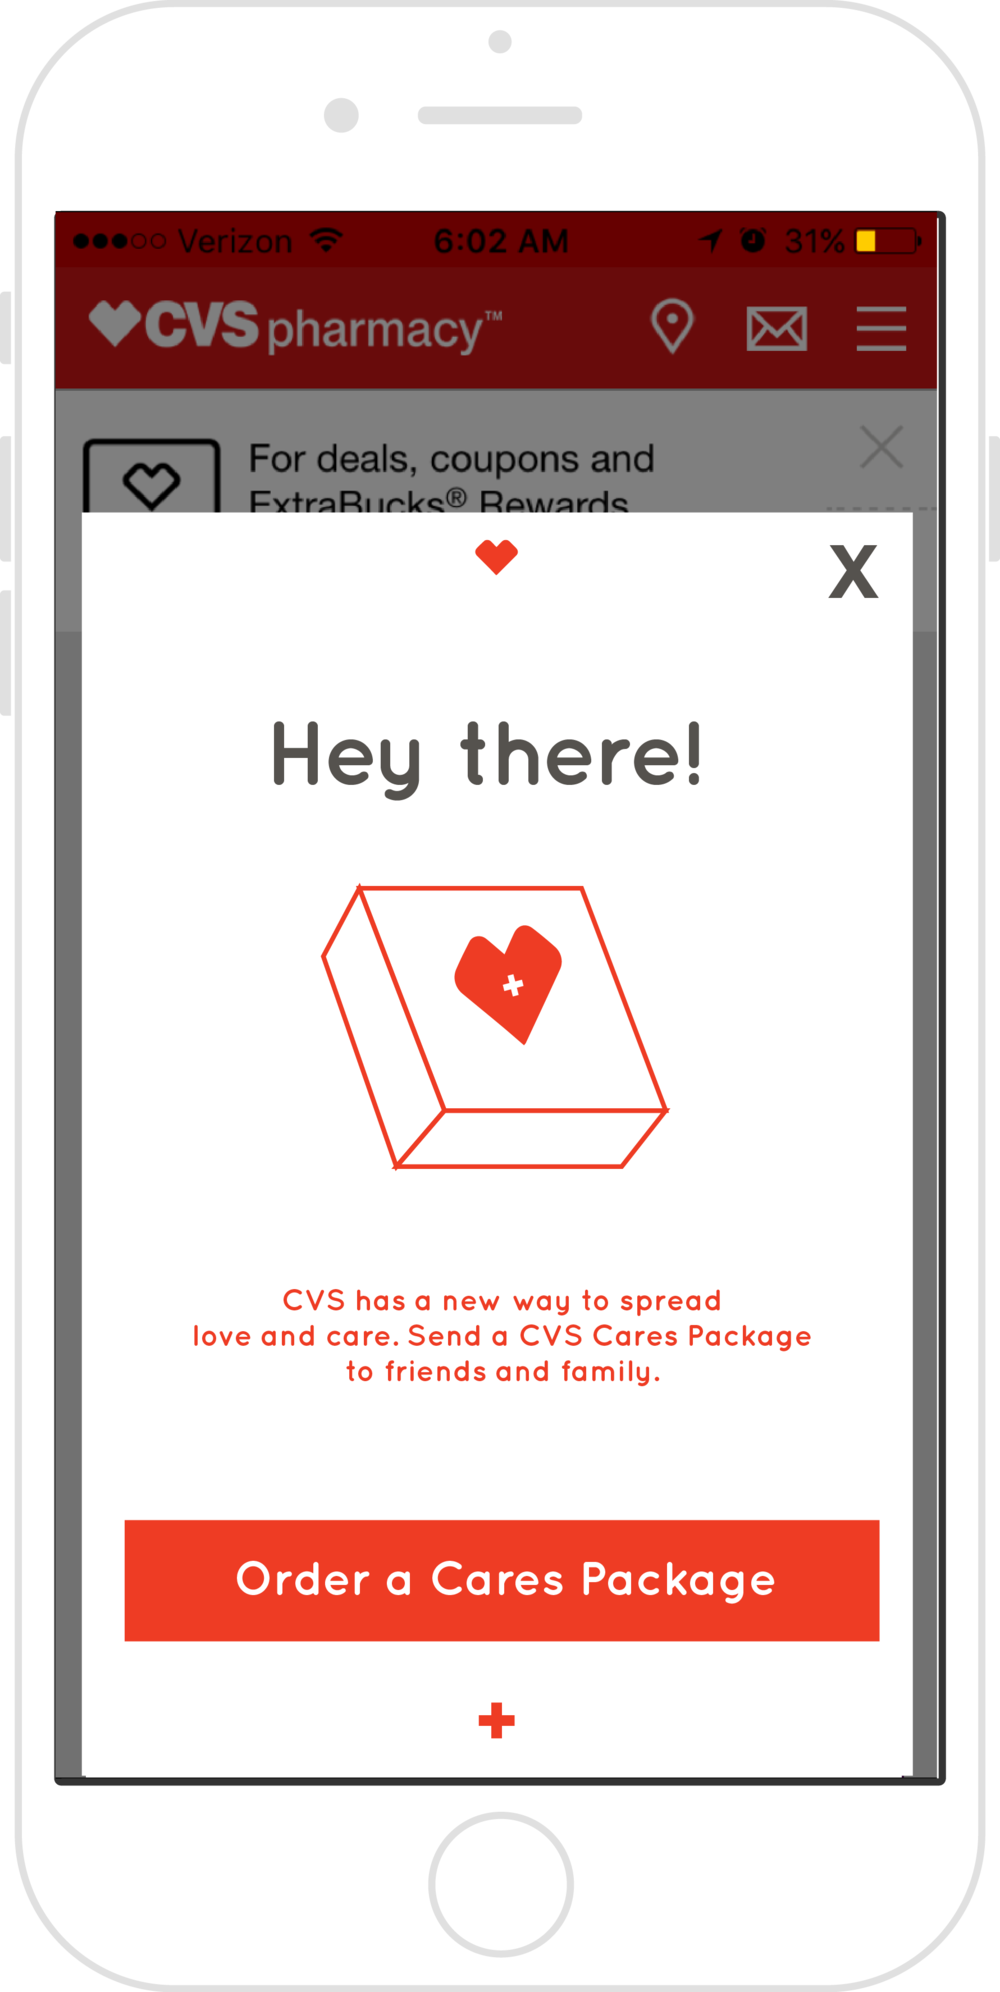 CVS CARES PACKAGE — Reagan Fromm